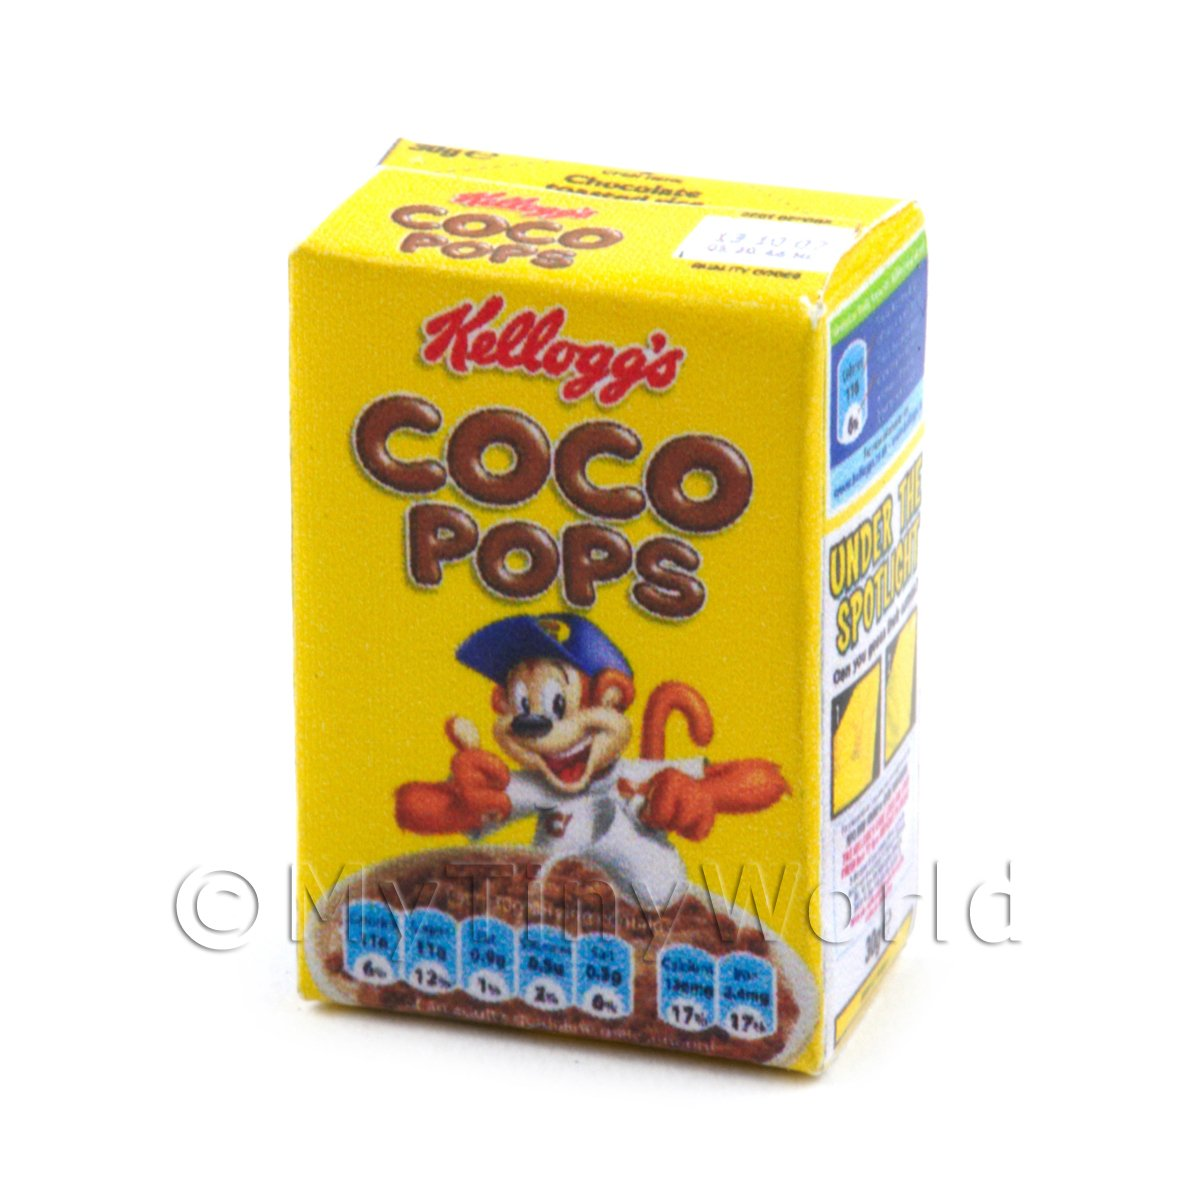 Dolls House Miniature Box of Kellogs Coco Pops